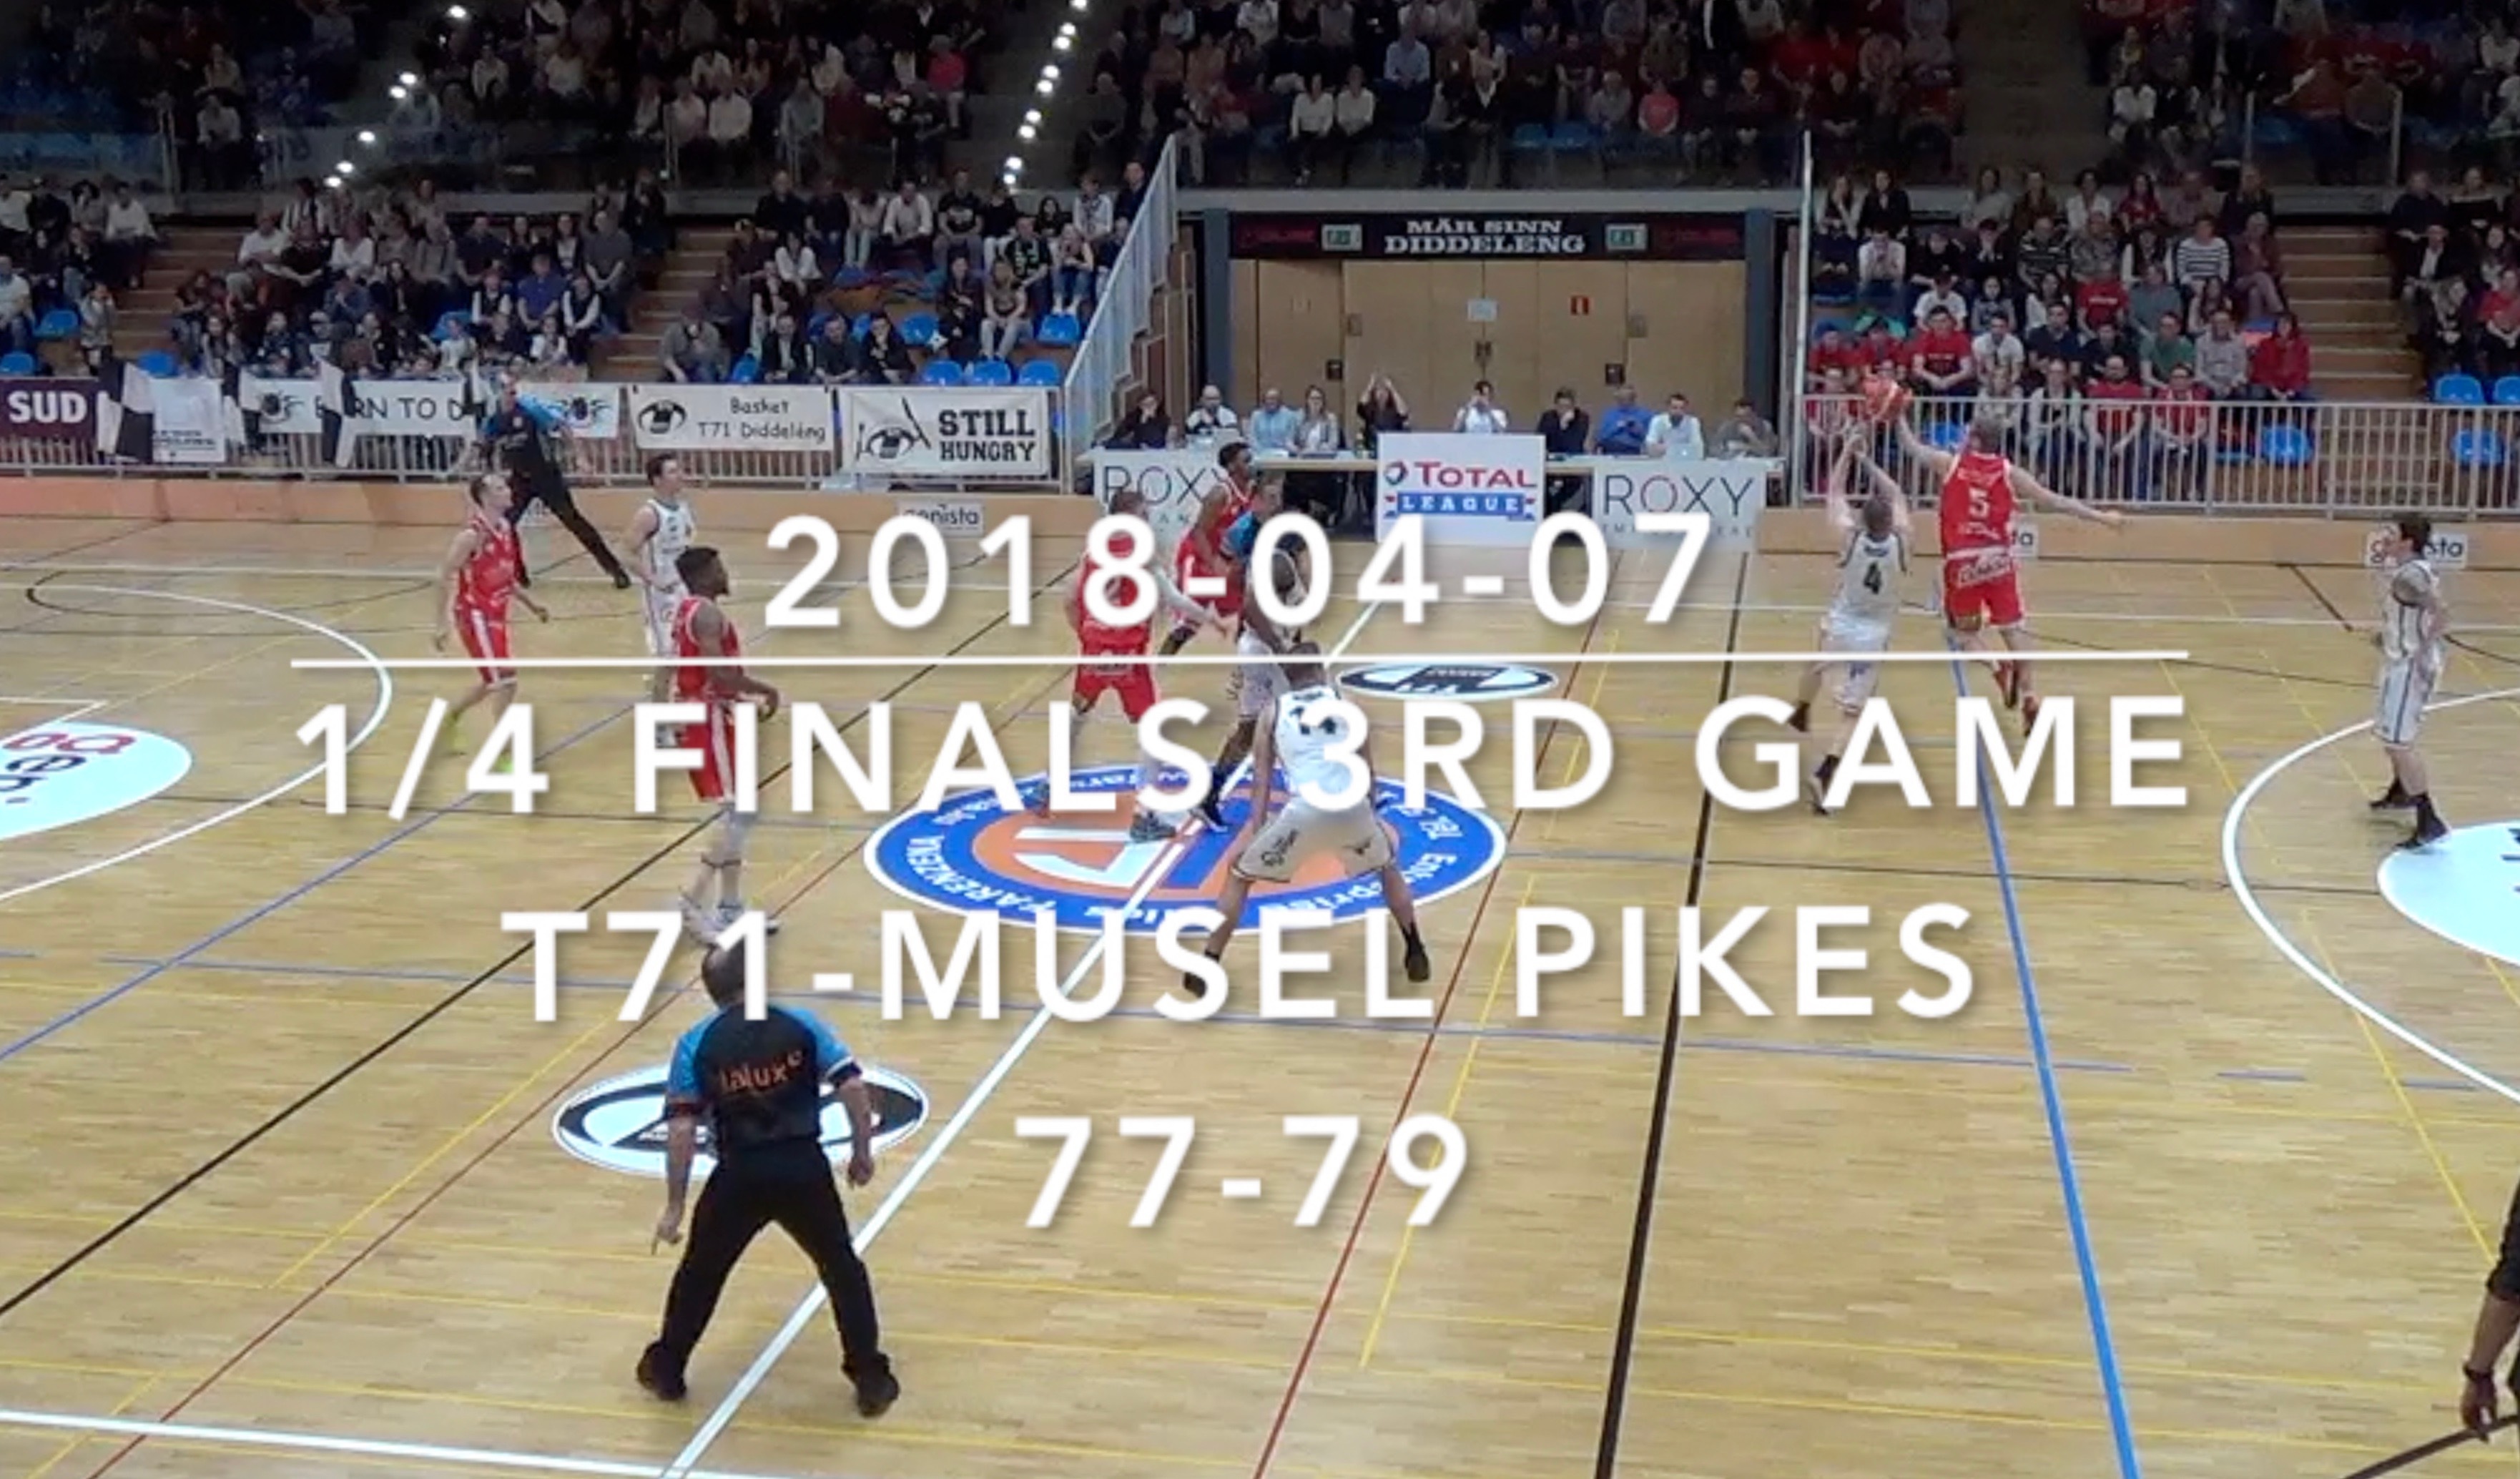 20180407 1/4 finals  3rd game T71-Pikes (Pikes highlights)